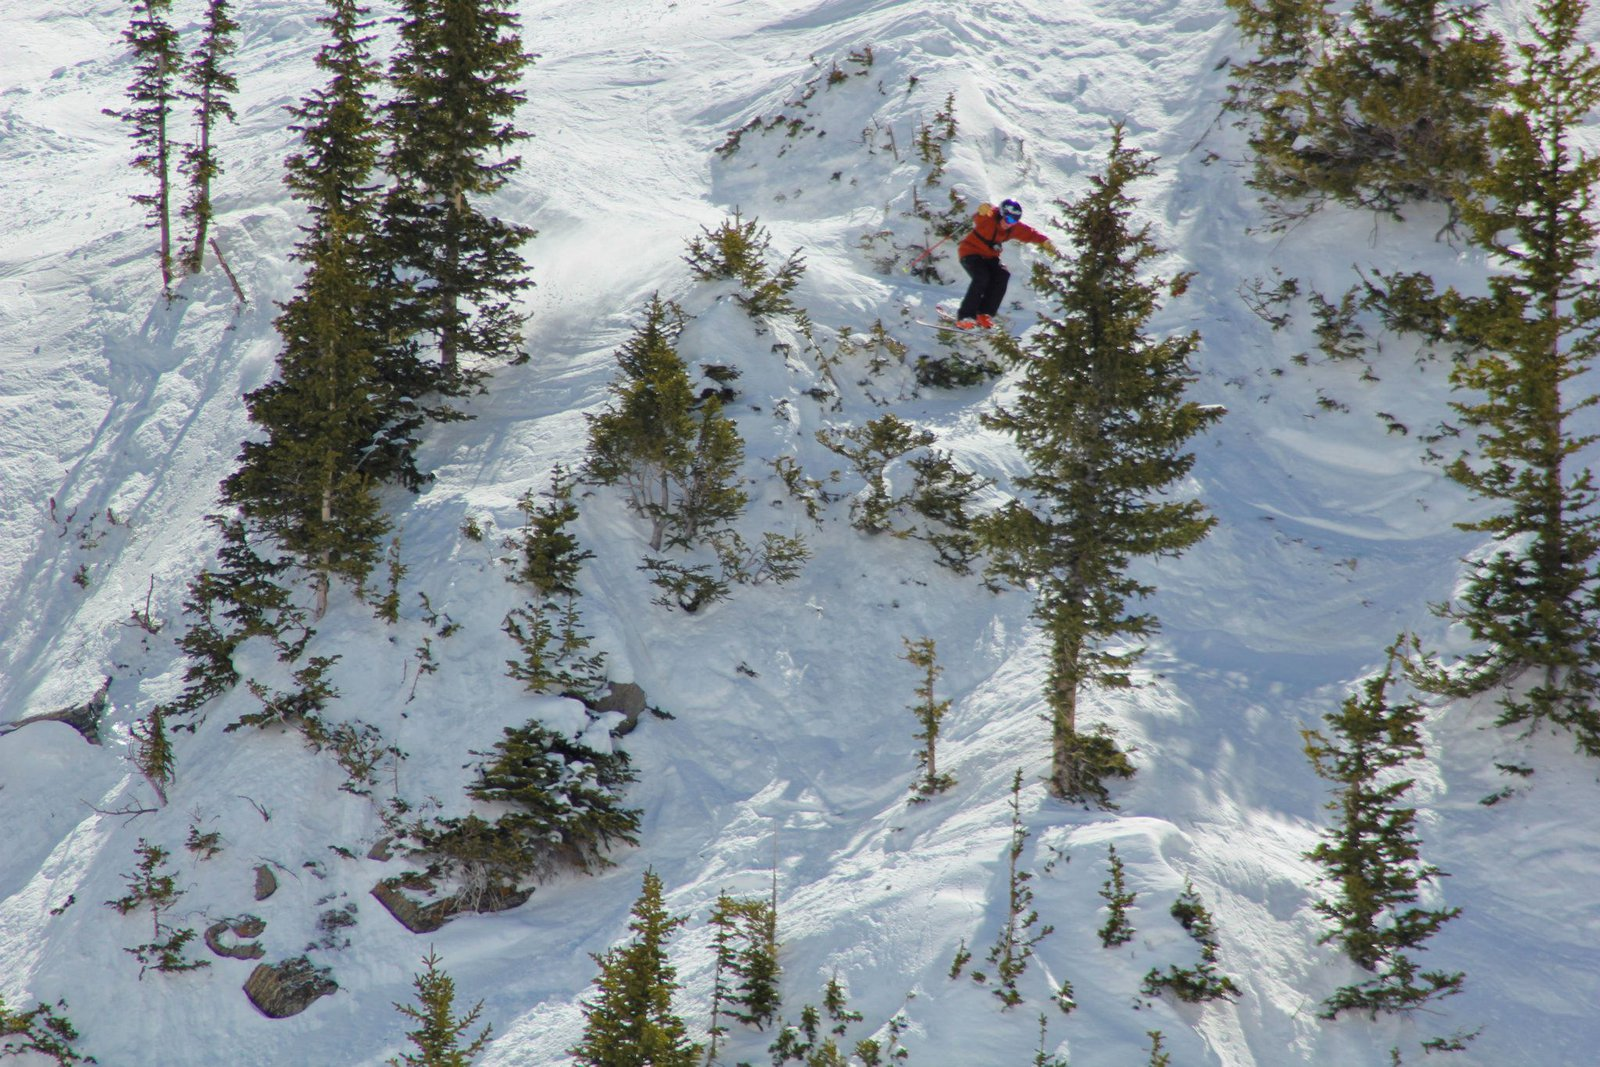 2 pic from comp at snow bird